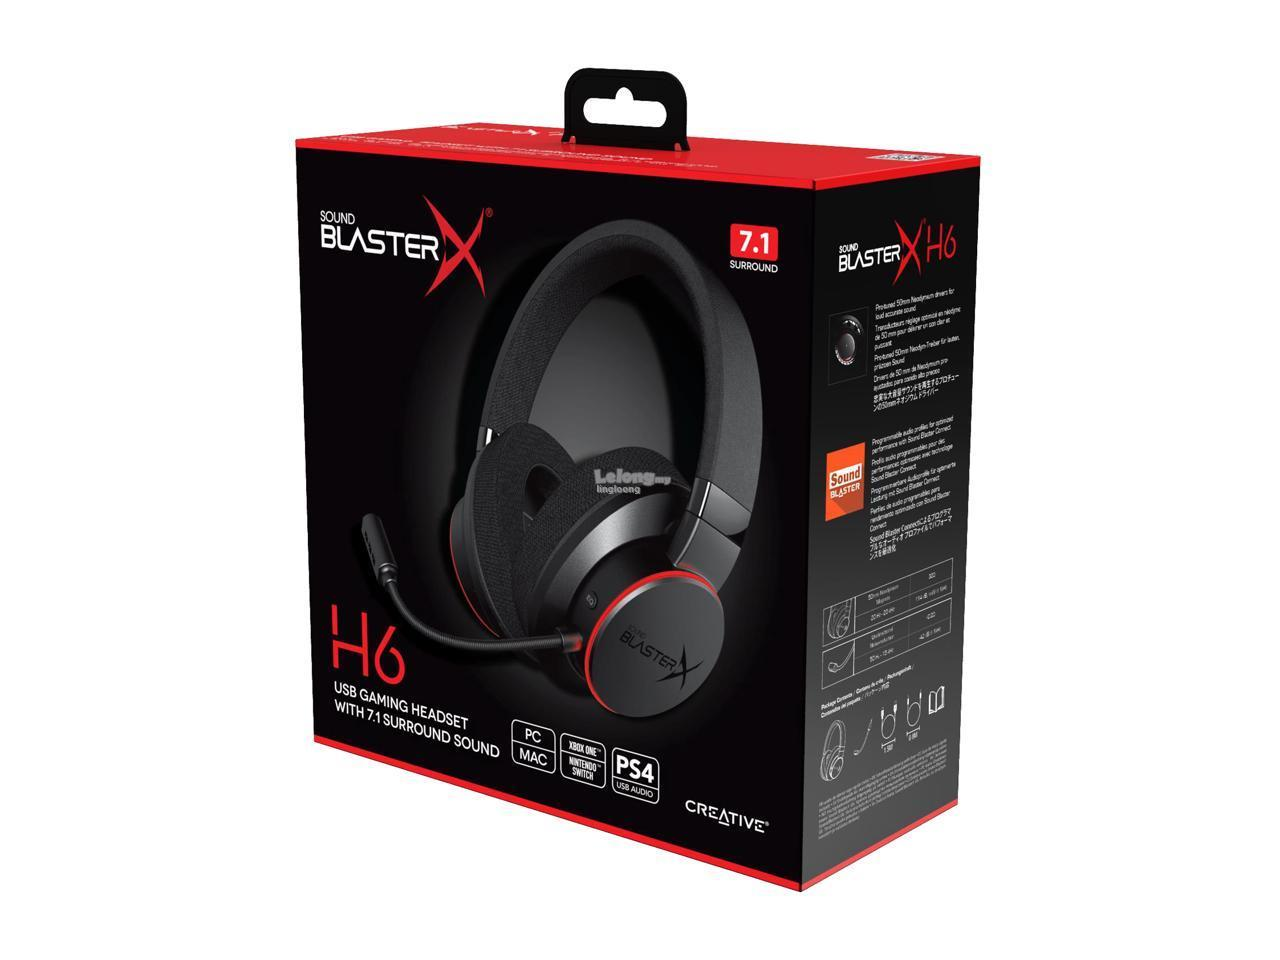 # CREATIVE Sound BlasterX H6 - 7.1 USB Gaming Headset #